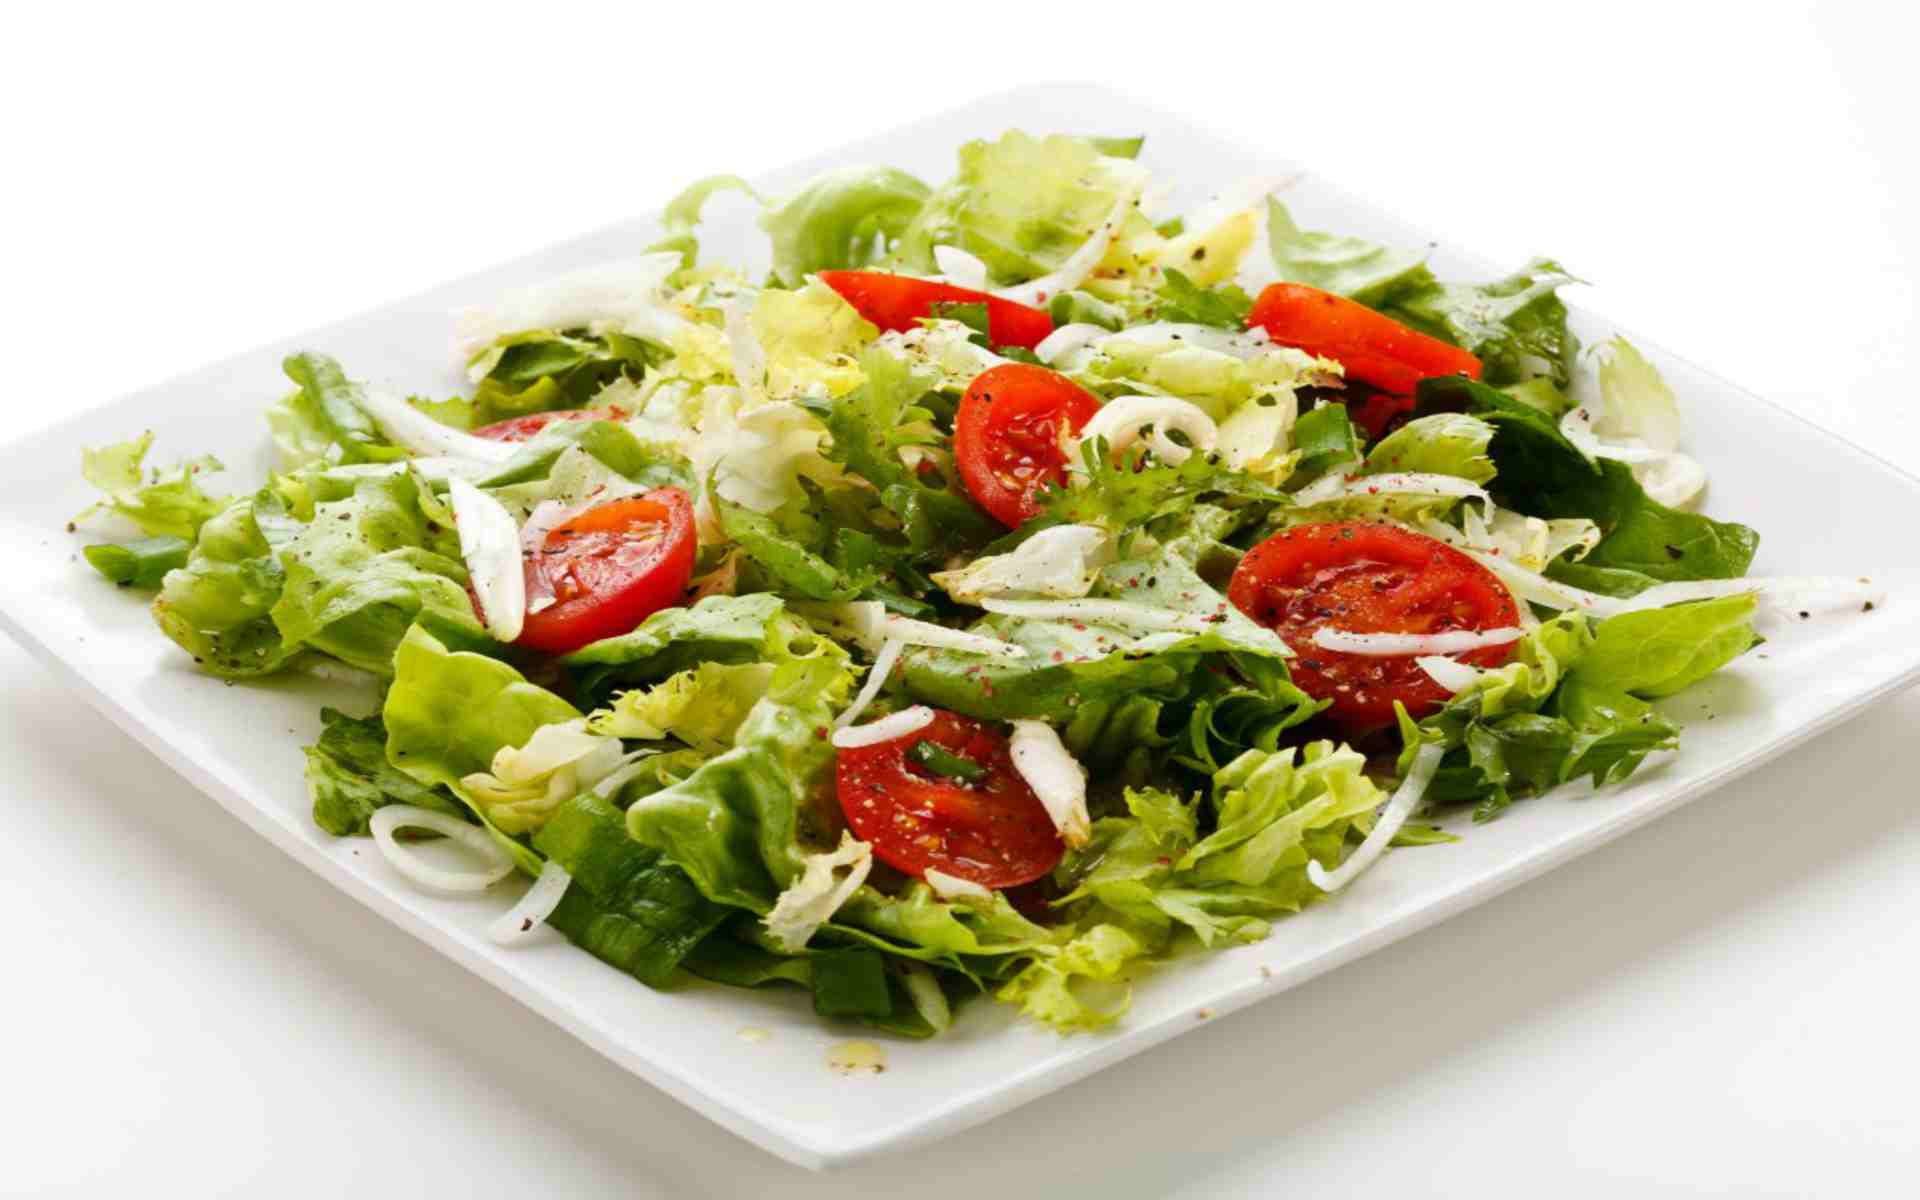 DOWNLOAD: salad plate white background free picture 2560 x 1600